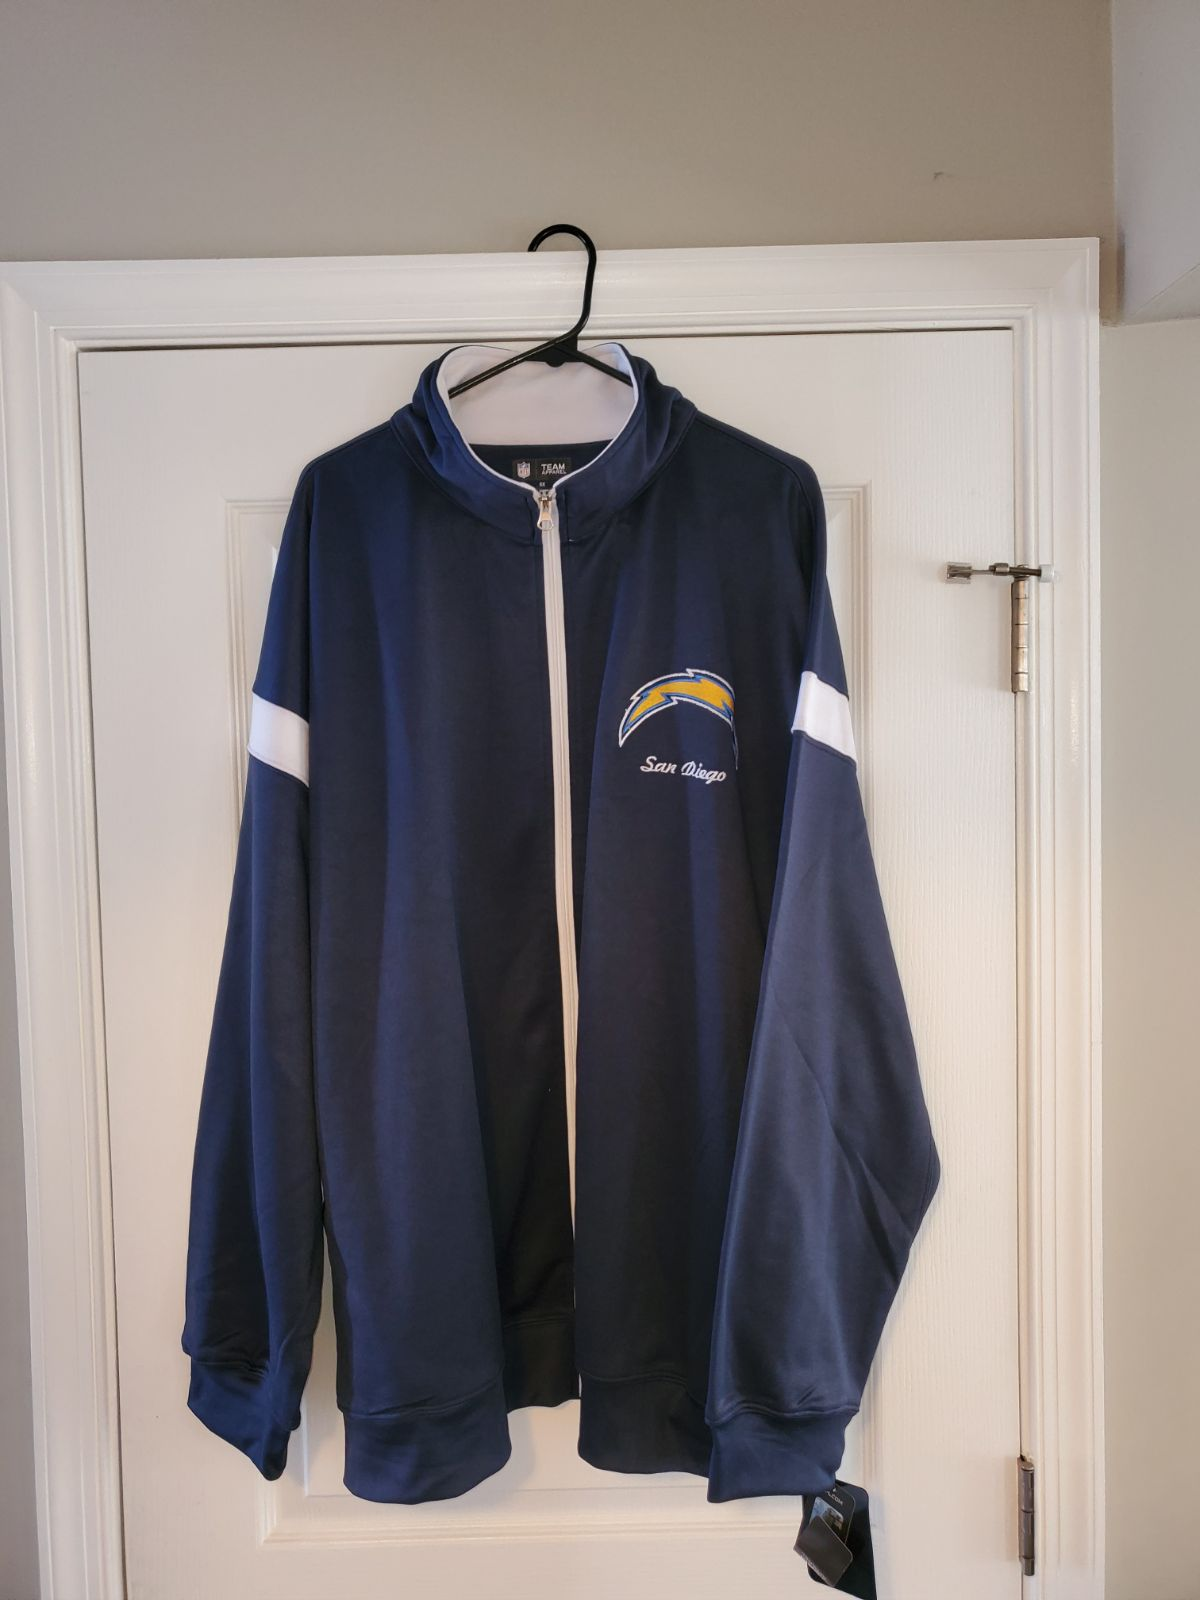 SAN DIEGO CHARGERS FULL ZIP JACKET 5XL